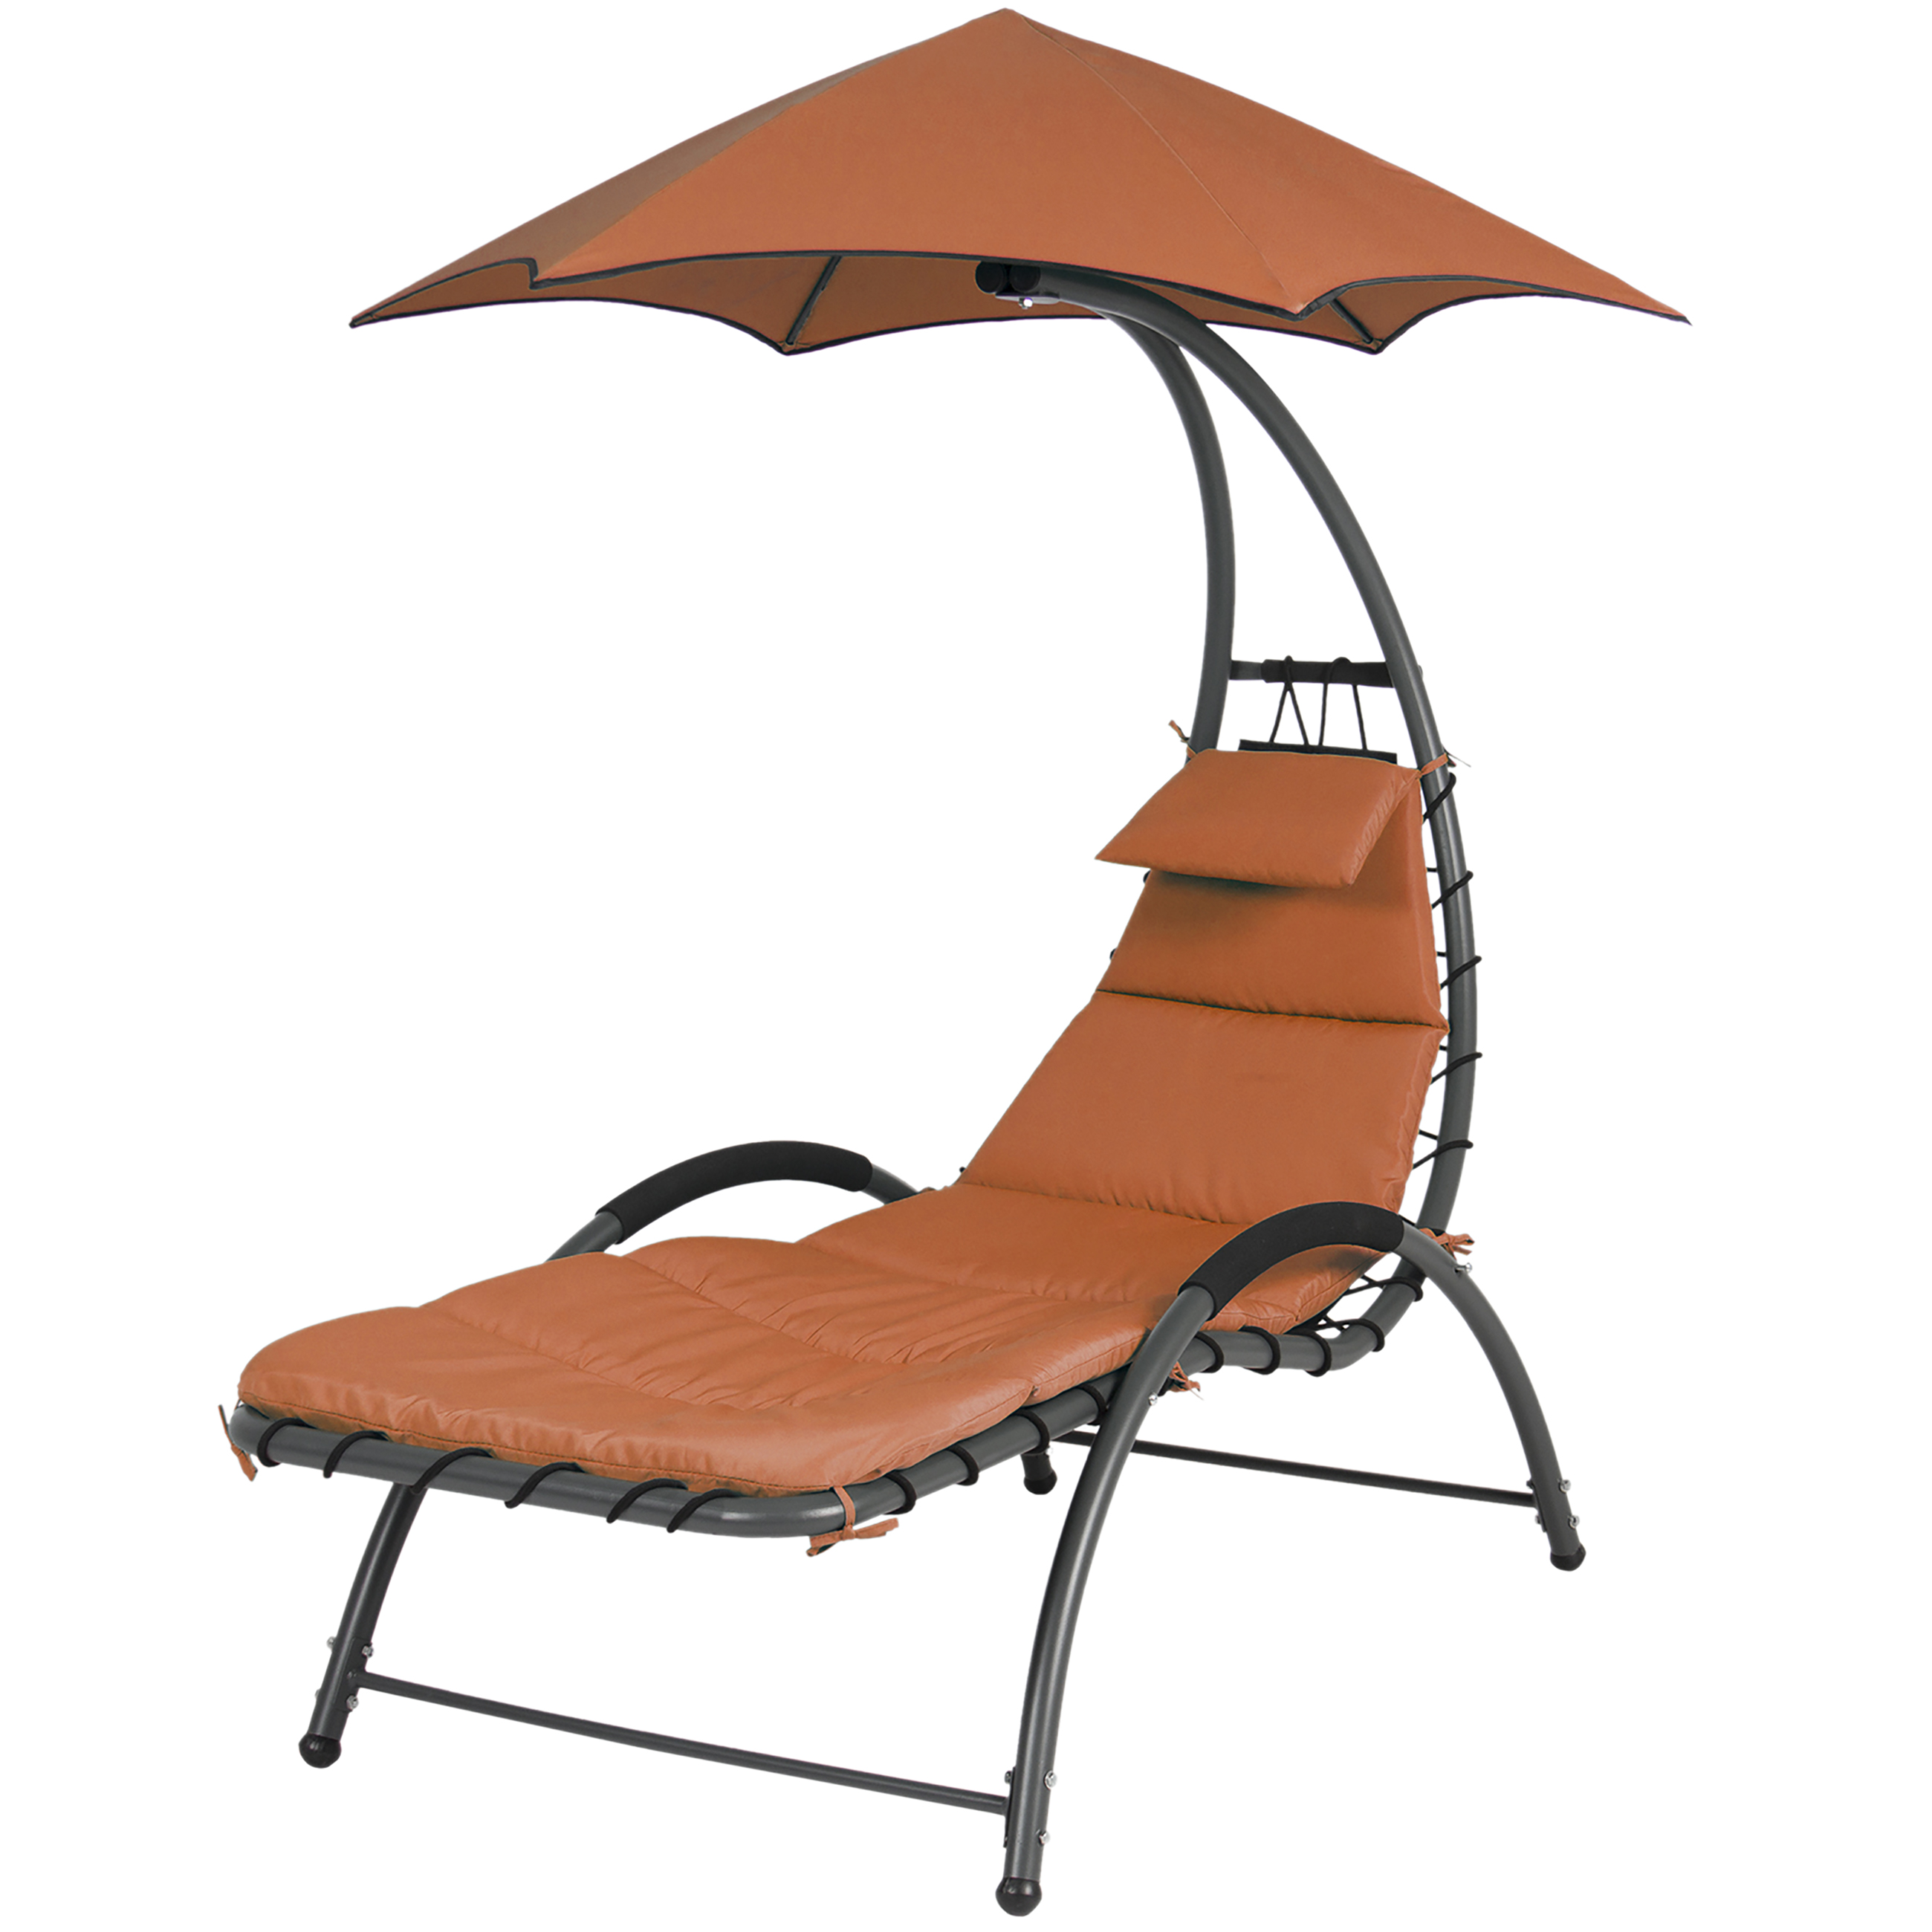 Arc Curved Hammock Dream Chaise Lounge Chair Outdoor Patio Pool Furniture